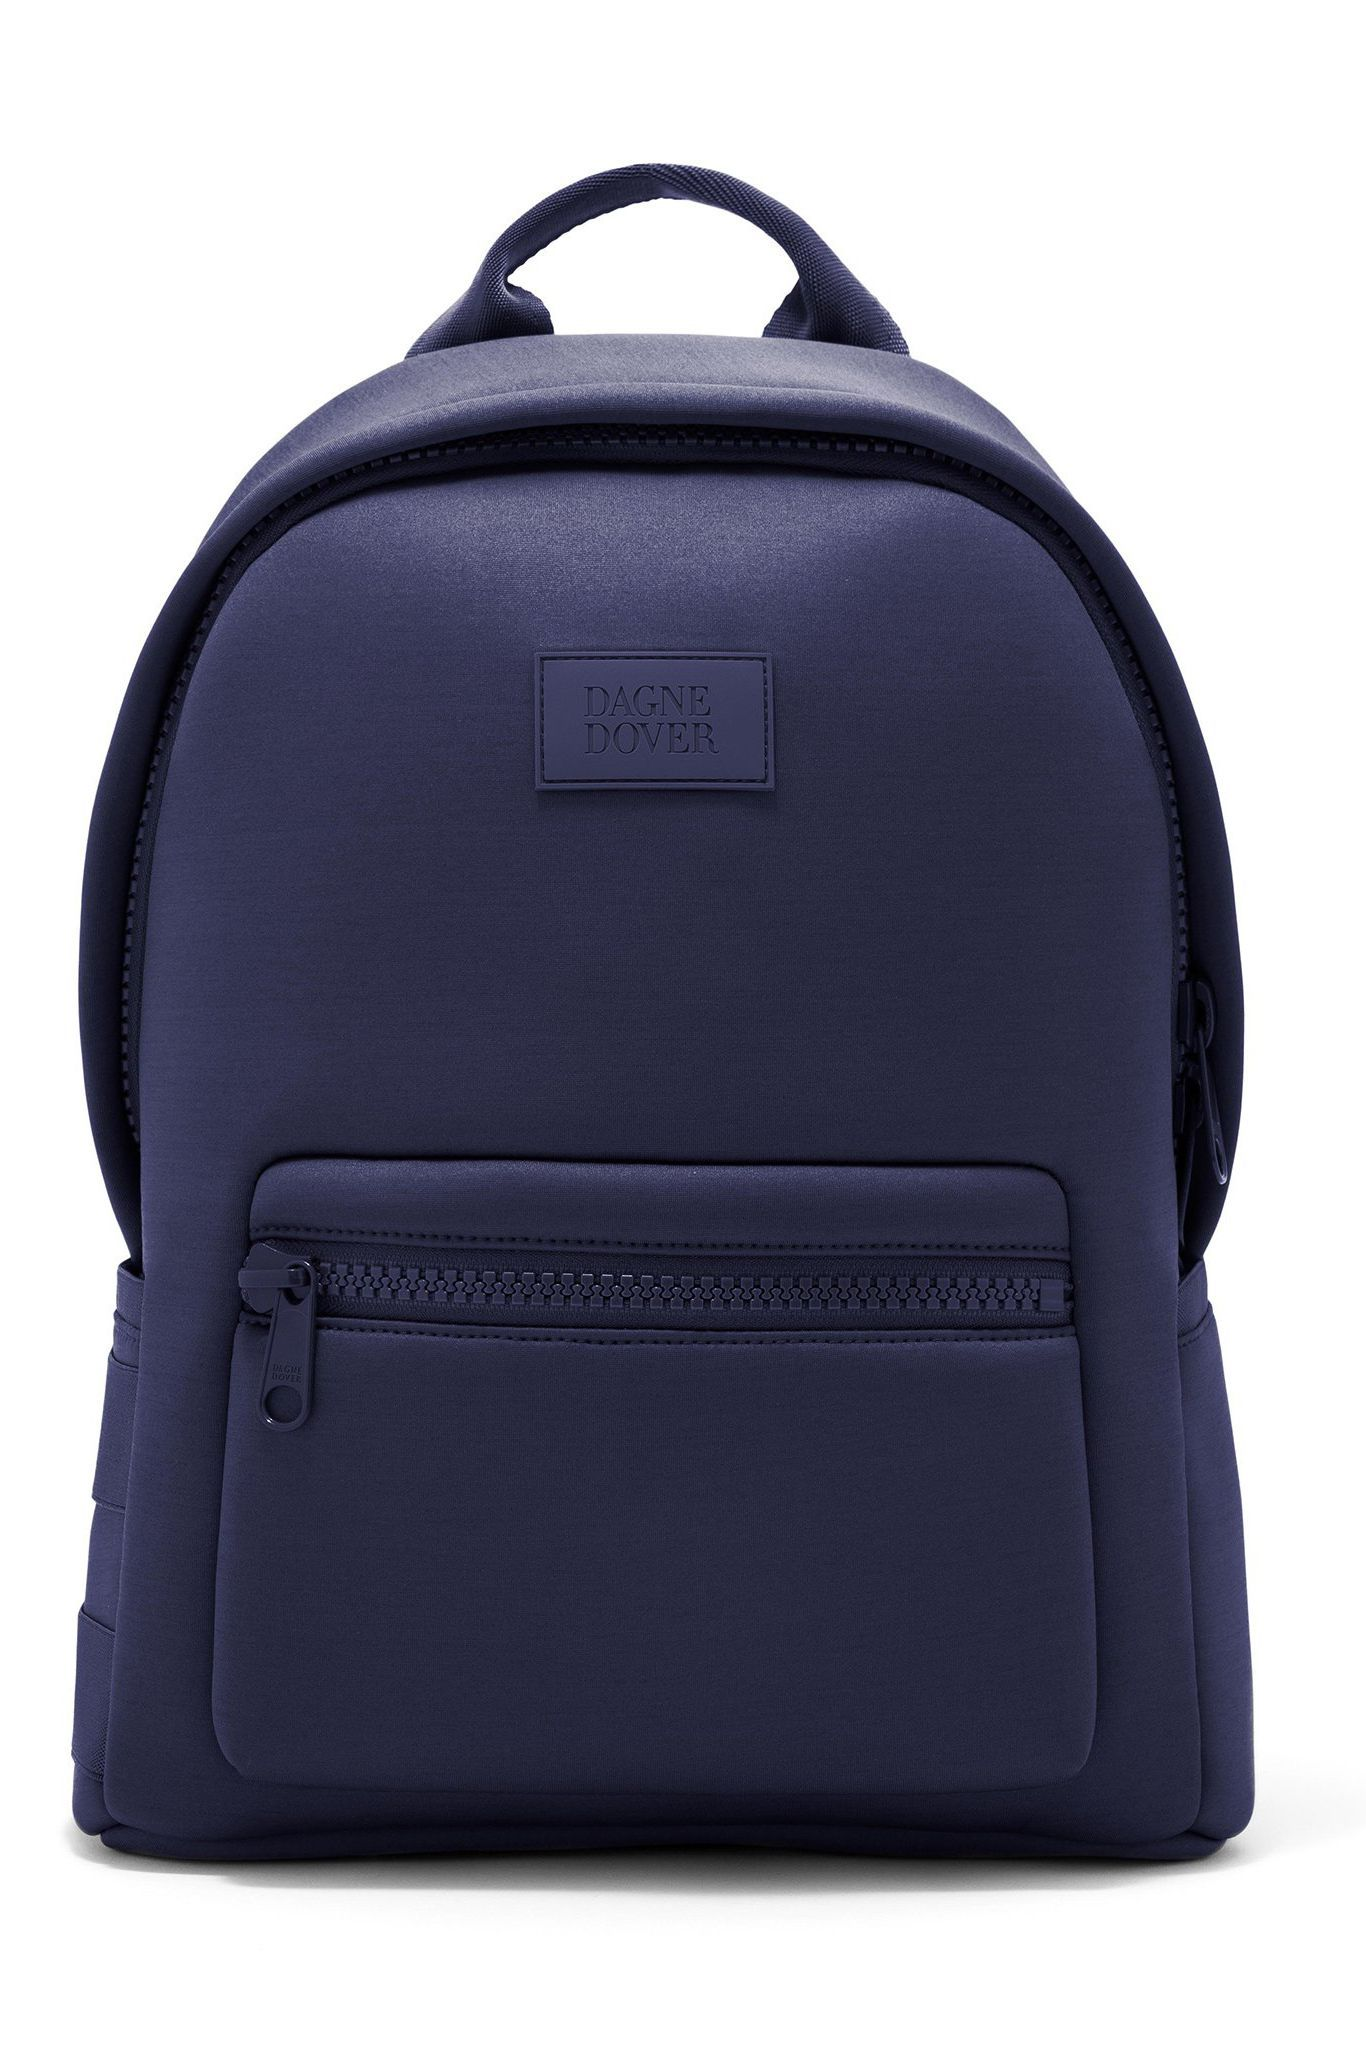 92ecd21230a56 13 Best Laptop Backpacks - Cutest Designer Computer Totes